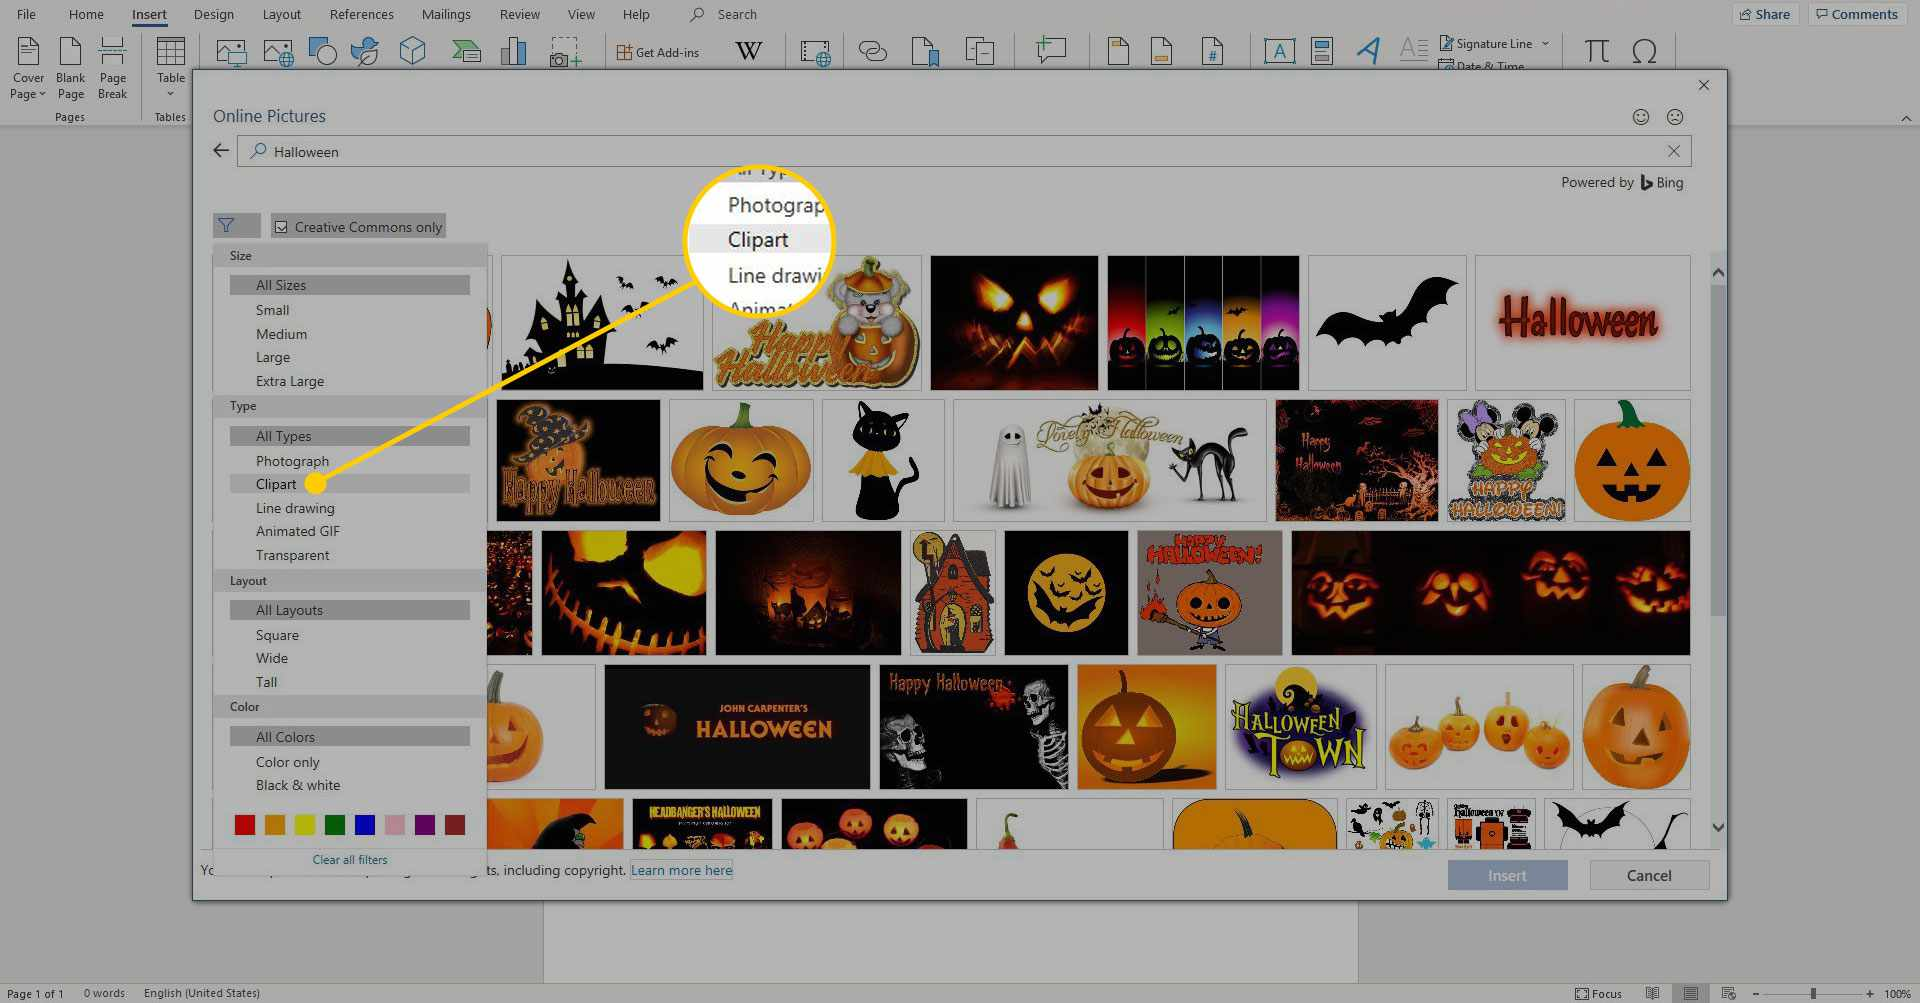 Online Pictures search results in Word with the Clipart filter highlighted